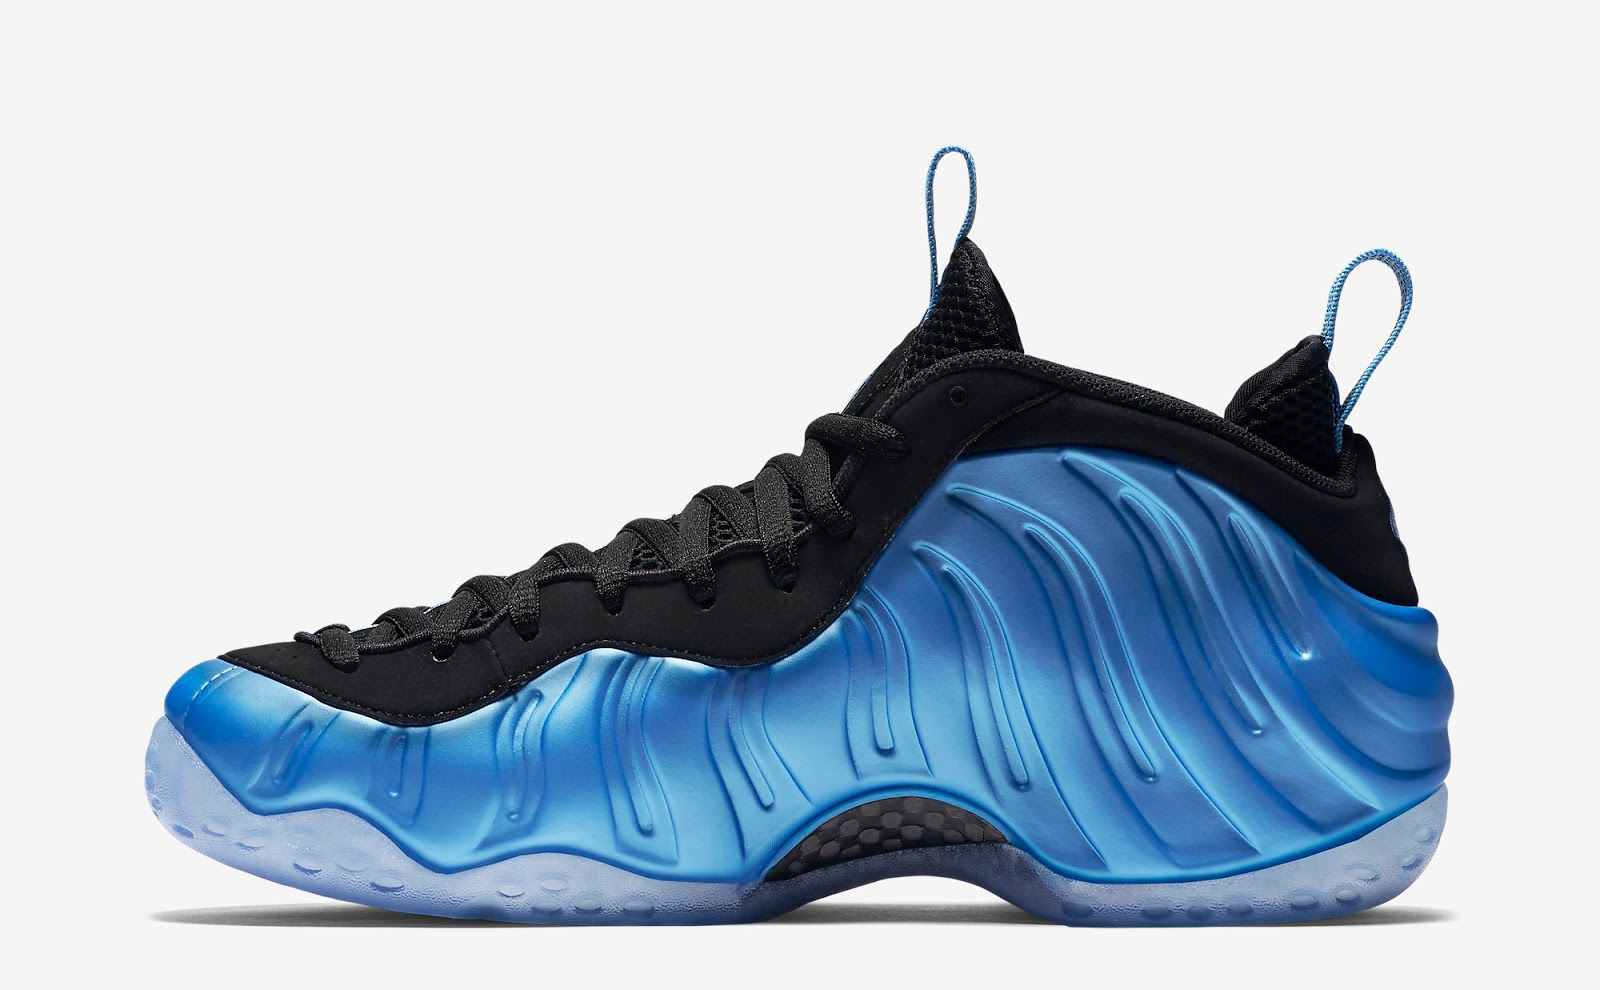 official photos 1d5b5 0fb19 ajordanxi Your  1 Source For Sneaker Release Dates  Nike Air Foamposite One